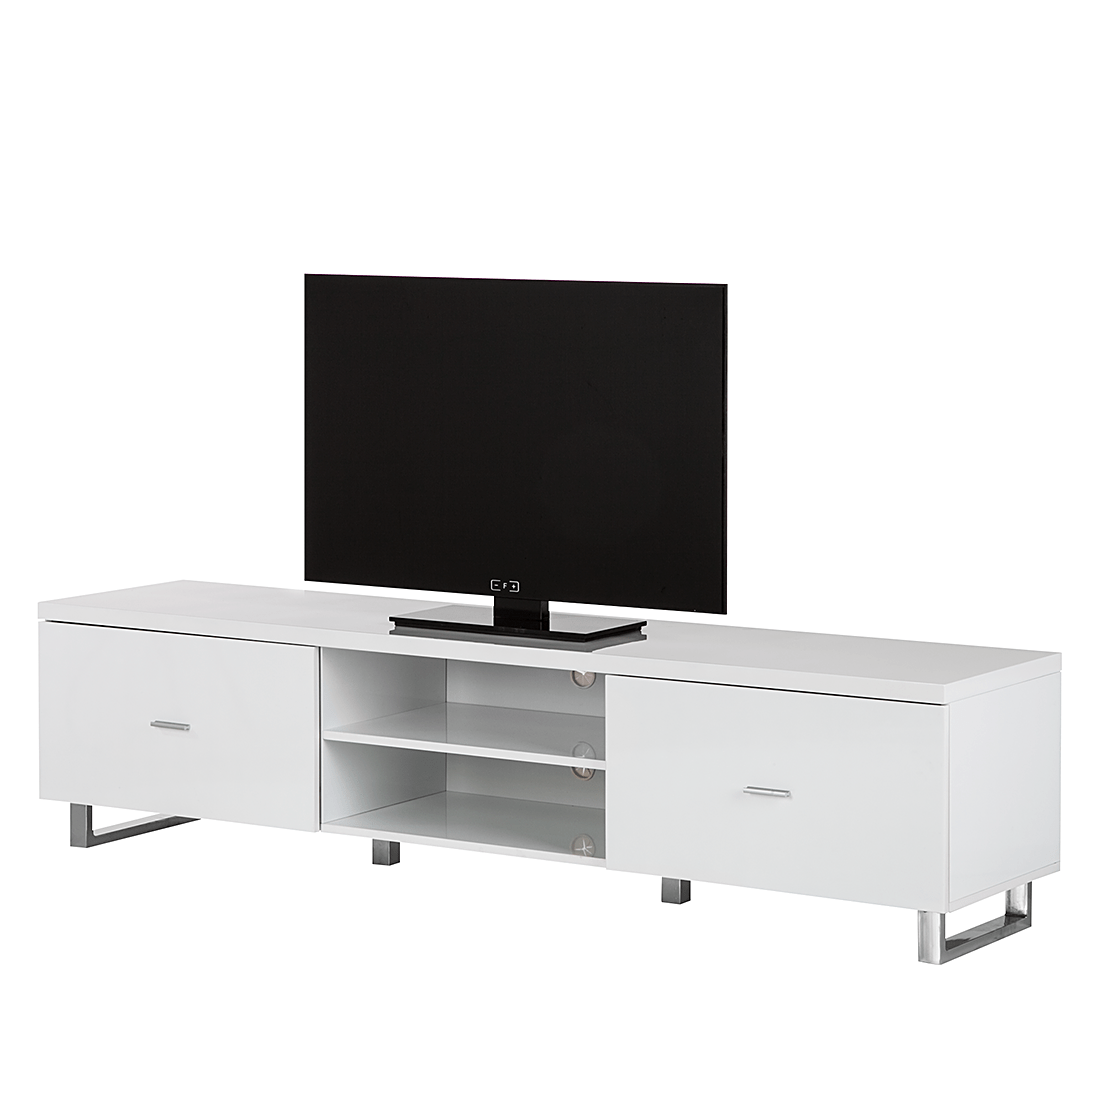 Hifi Regal Wandmontage Hifi Regal Wandmontage Hifi Regal Dvd Wandhalterung Glas